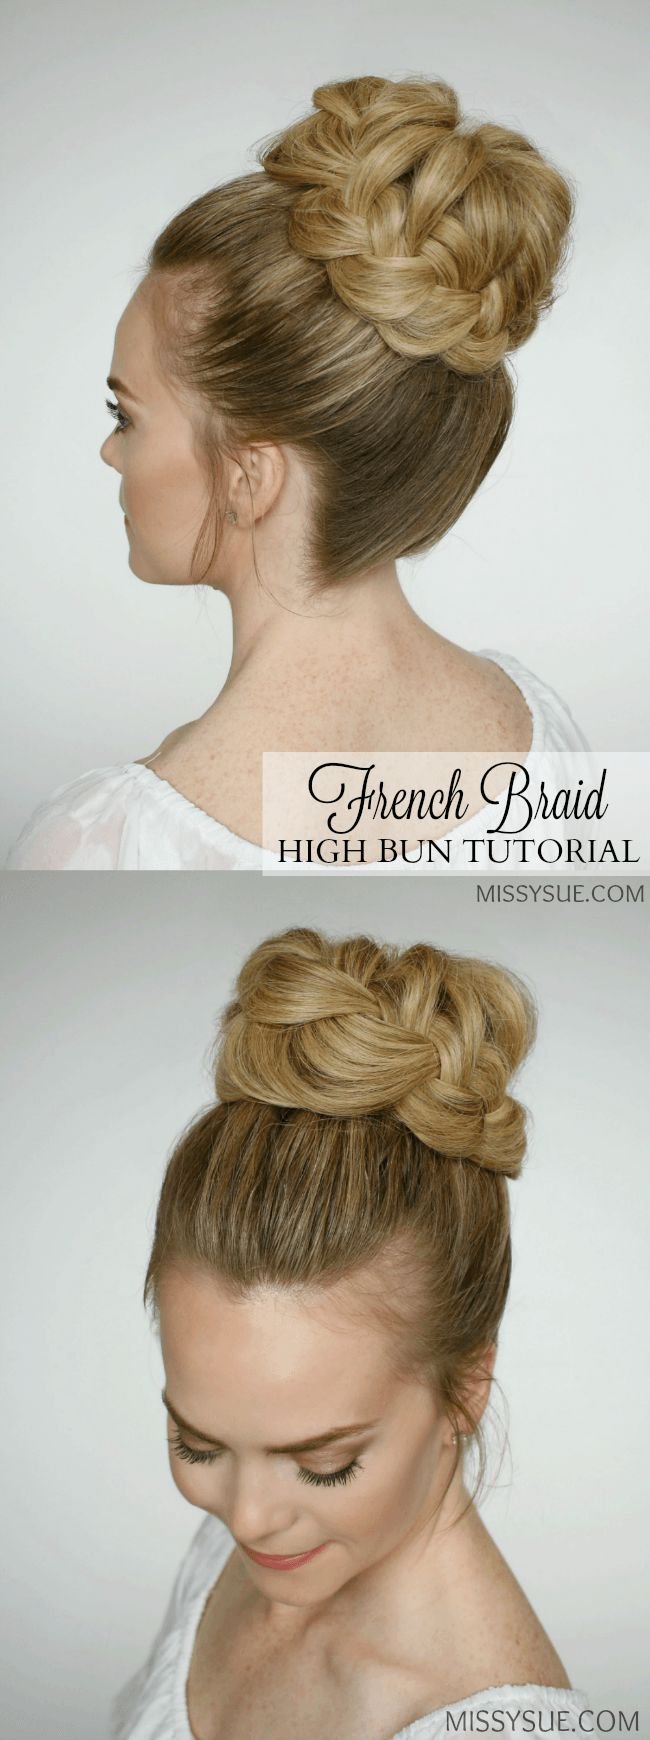 french-braid-high-bun-hairstyle-tutorial-3